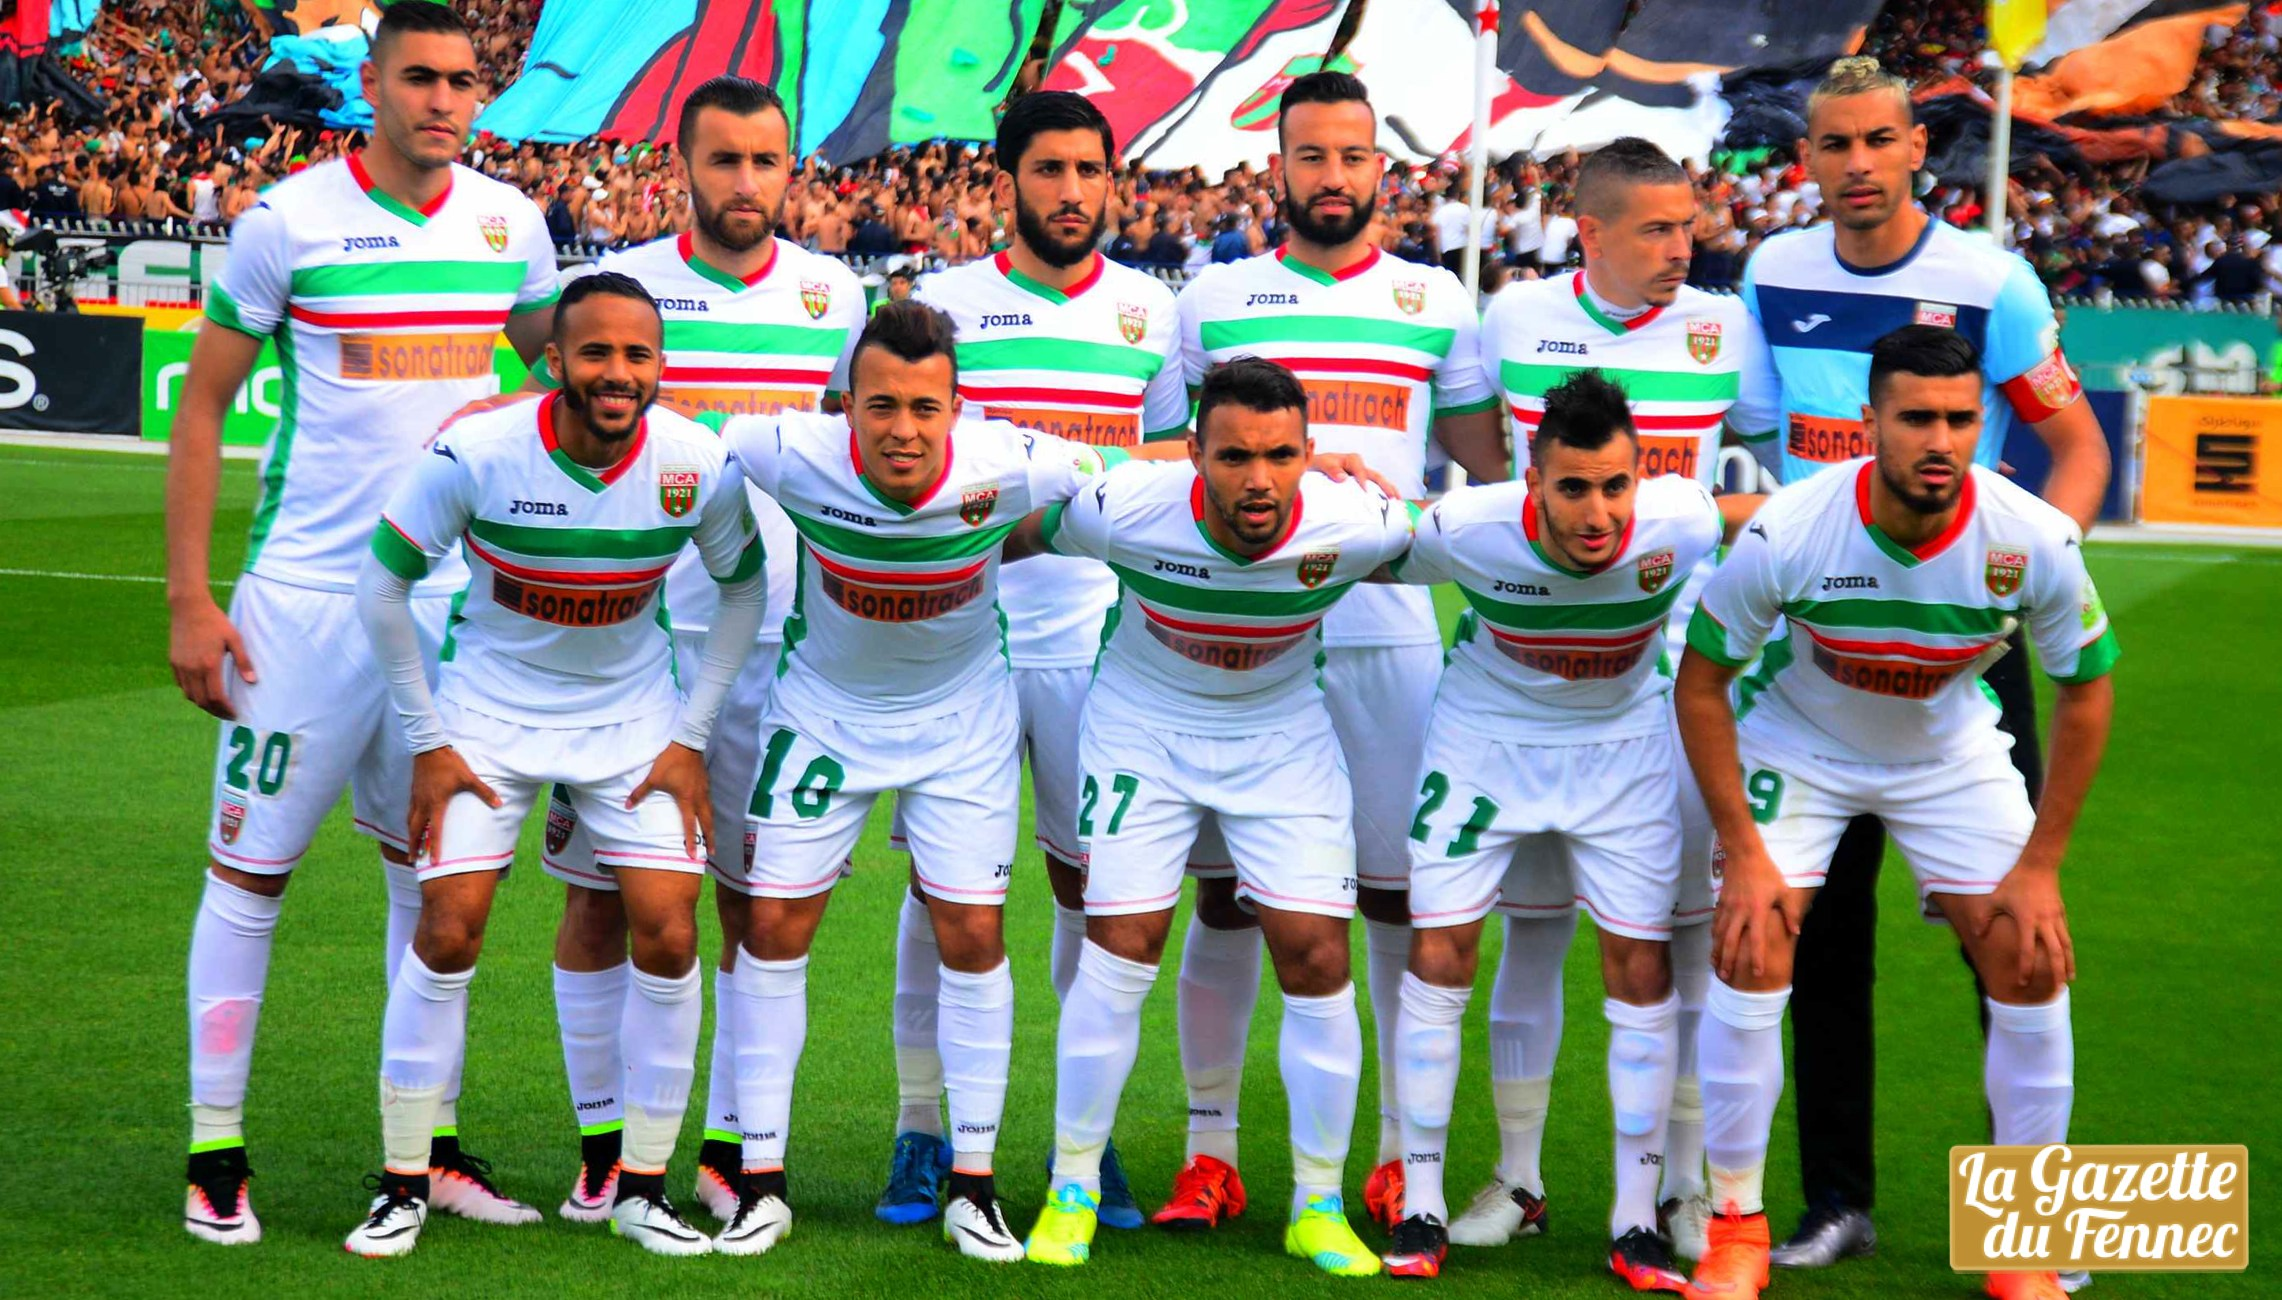 derby mca usma onze mouloudia